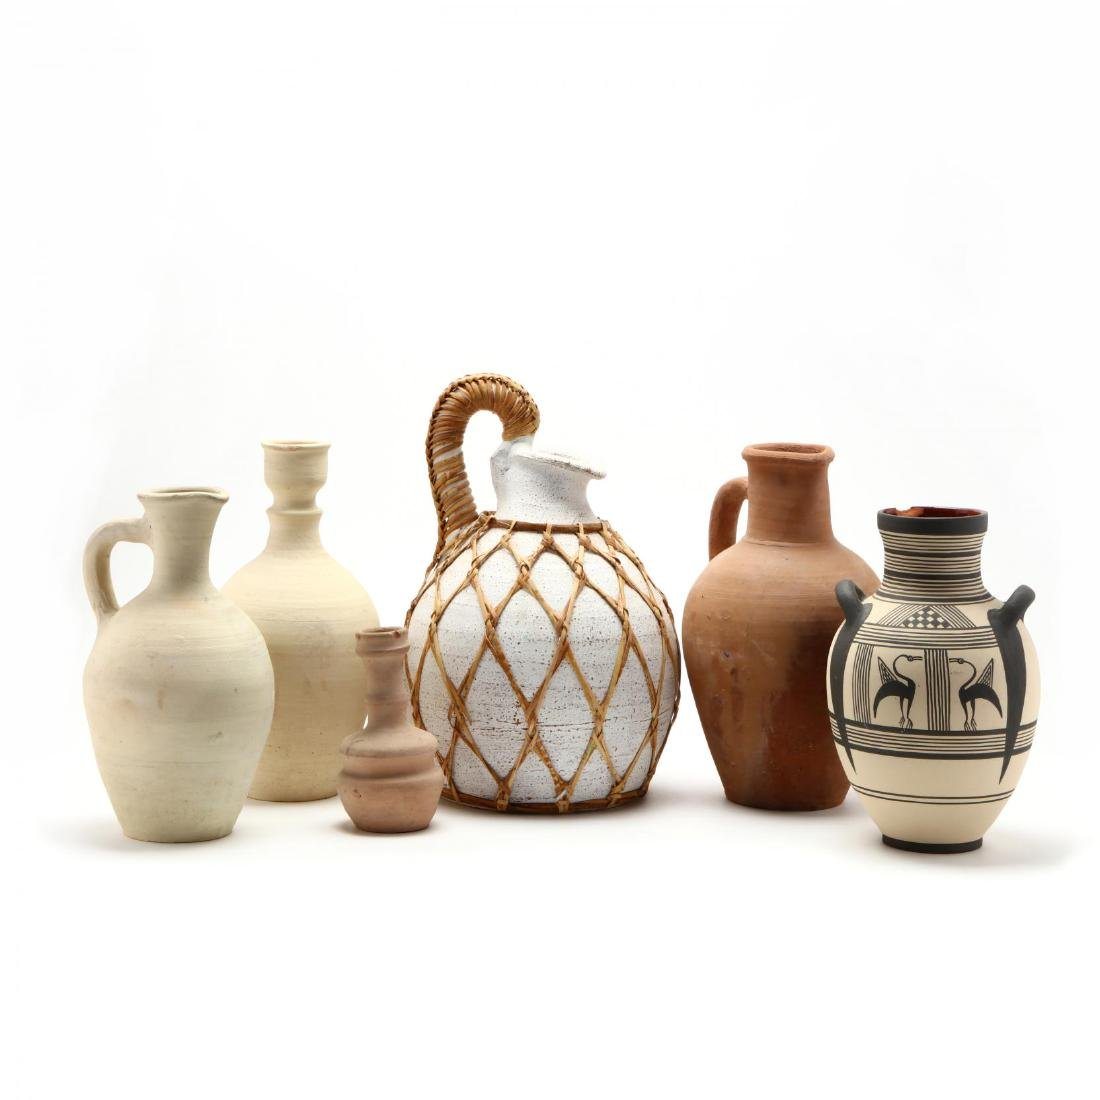 Five Contemporary Cypriot Pottery Vessels